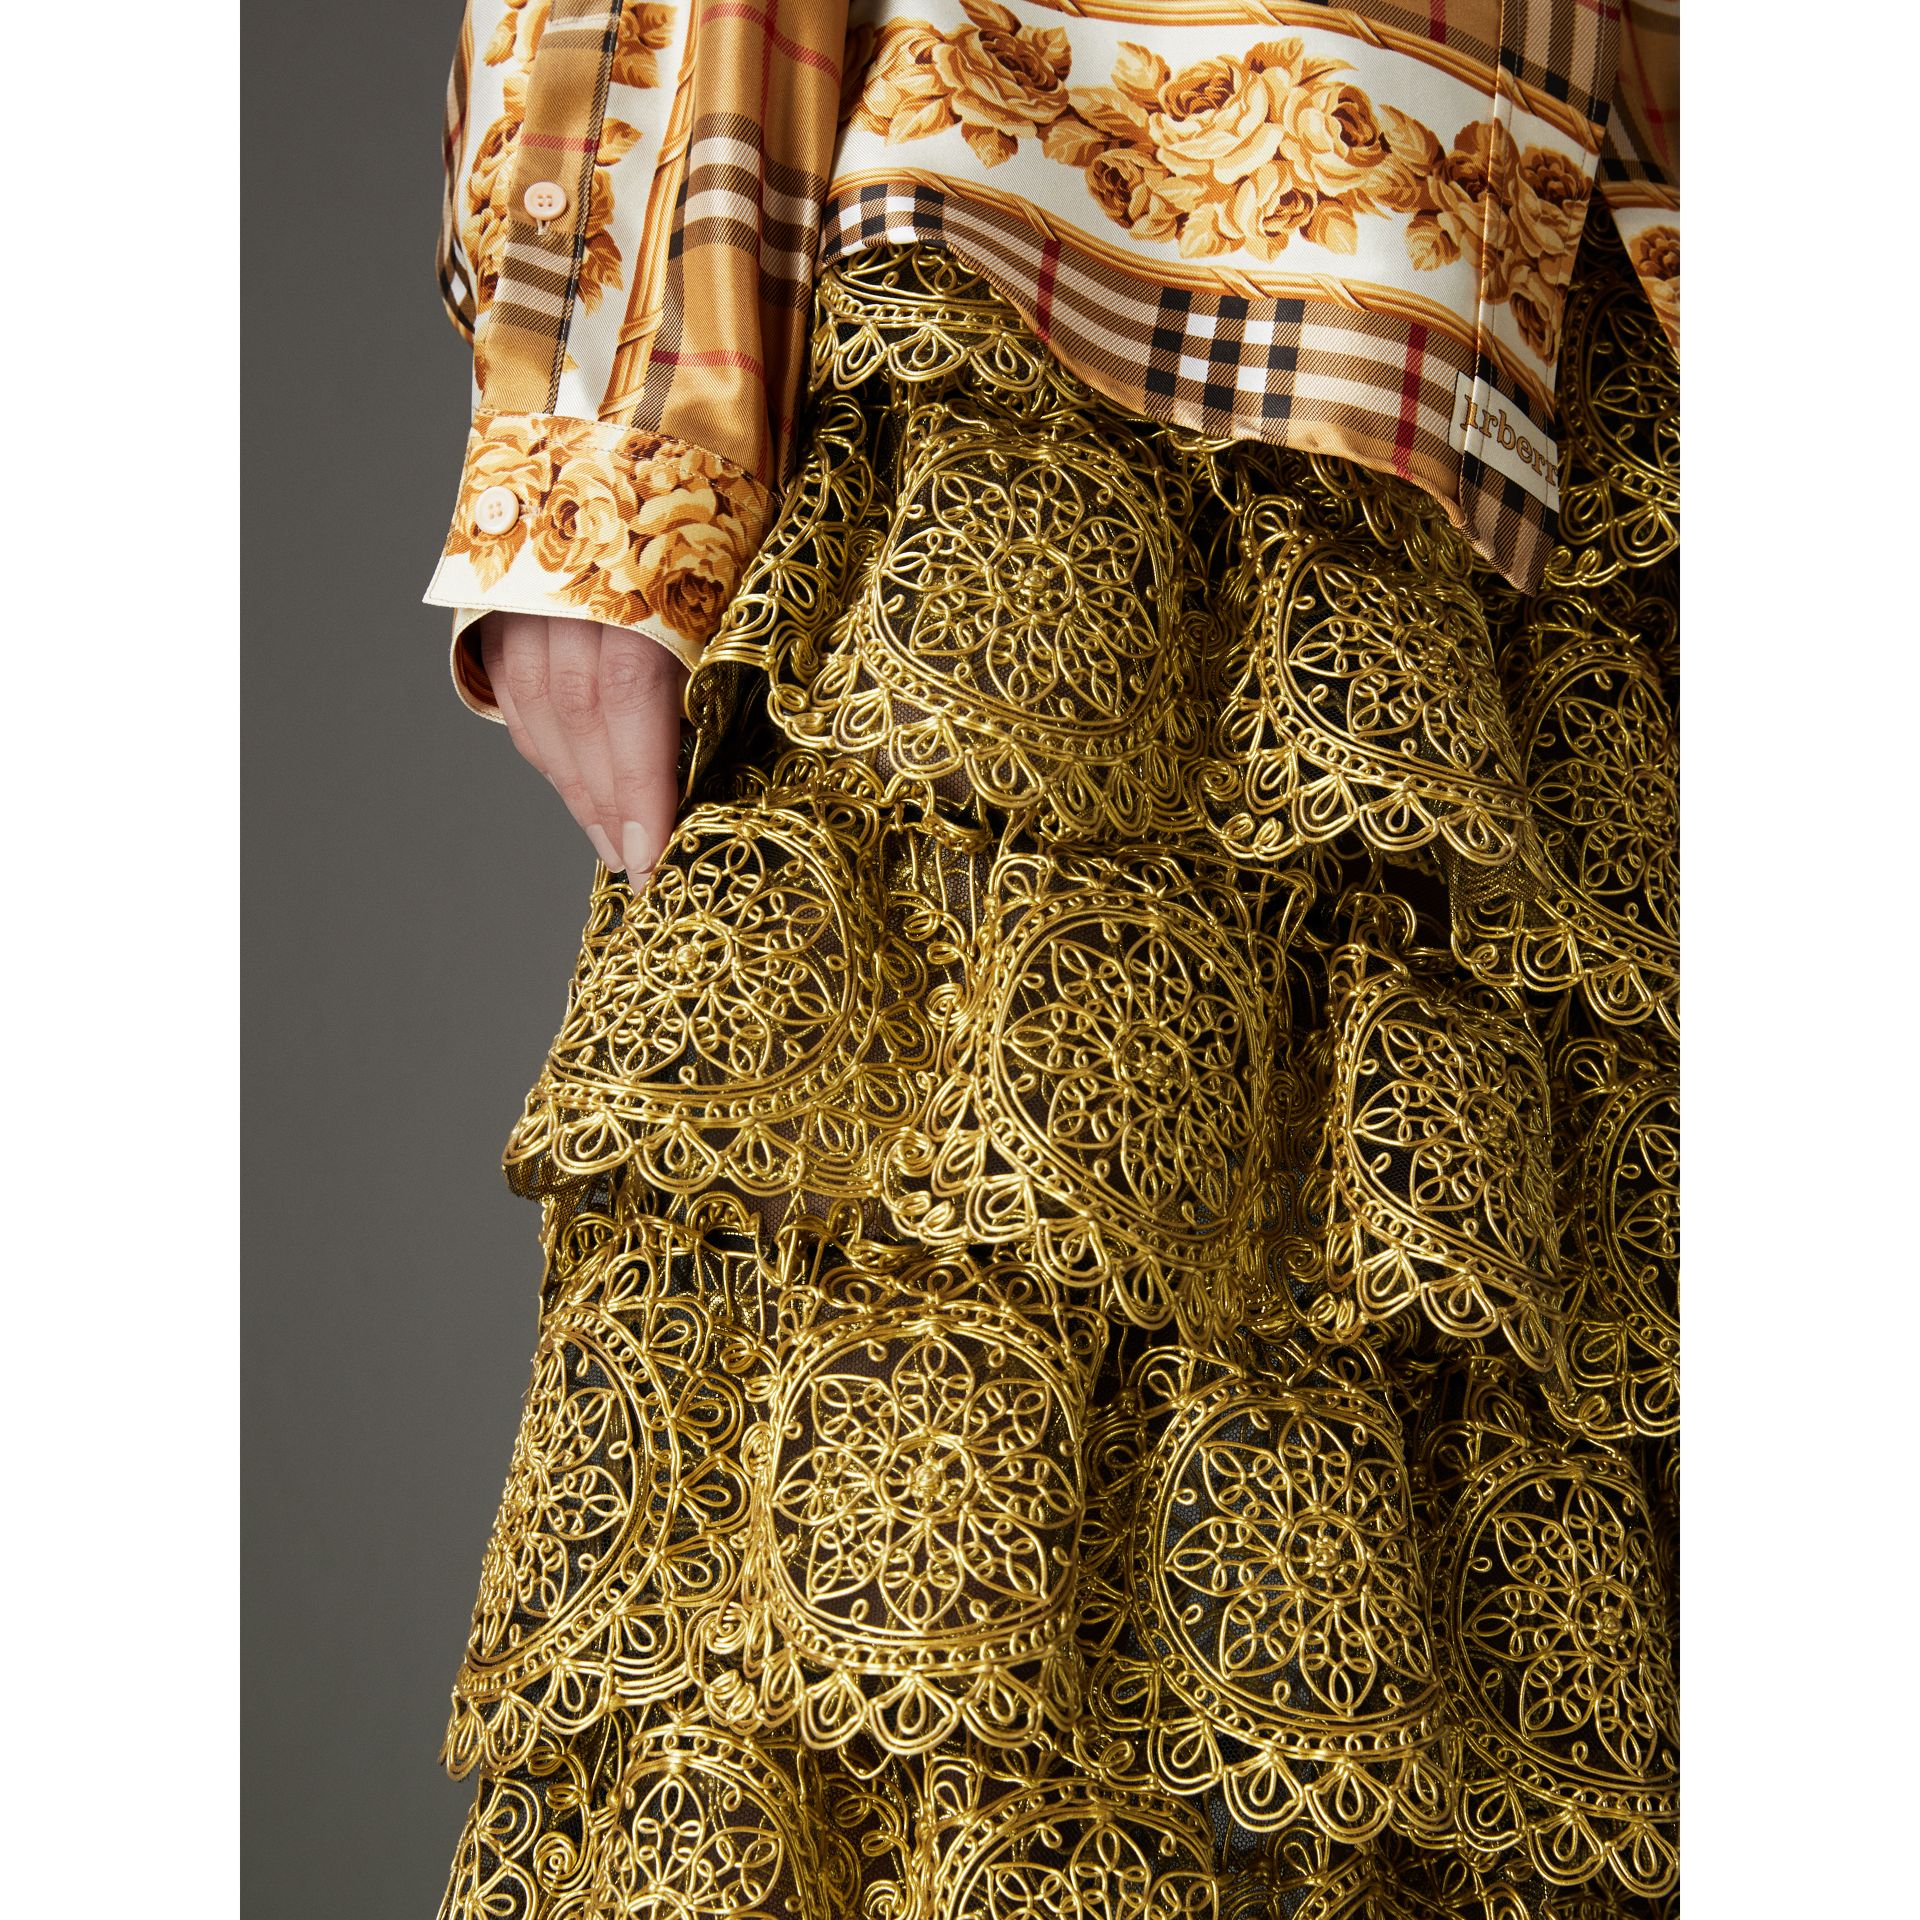 Tiered Silicone Lace Skirt in Gold - Women | Burberry - gallery image 1